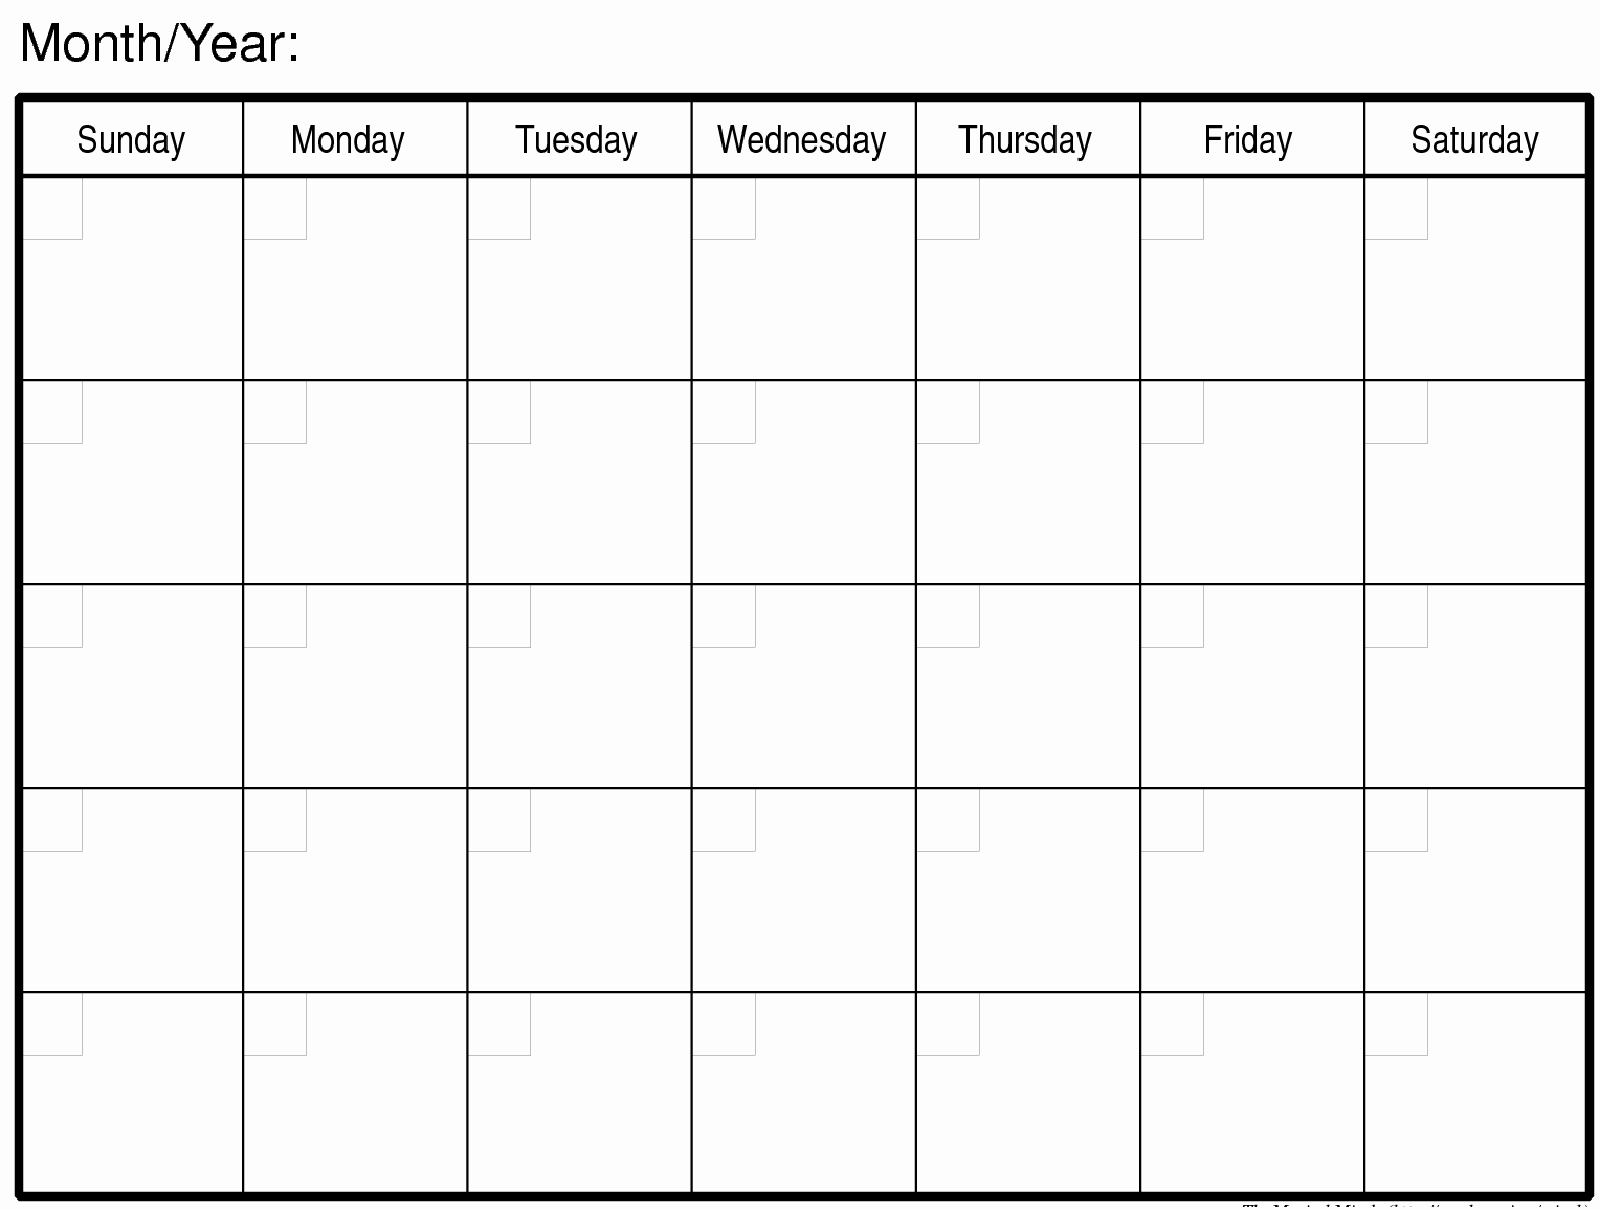 Blank Monthly Calendars To Print Free Calendar 2018 Printable pertaining to Blank Monthly Calendar Print Out